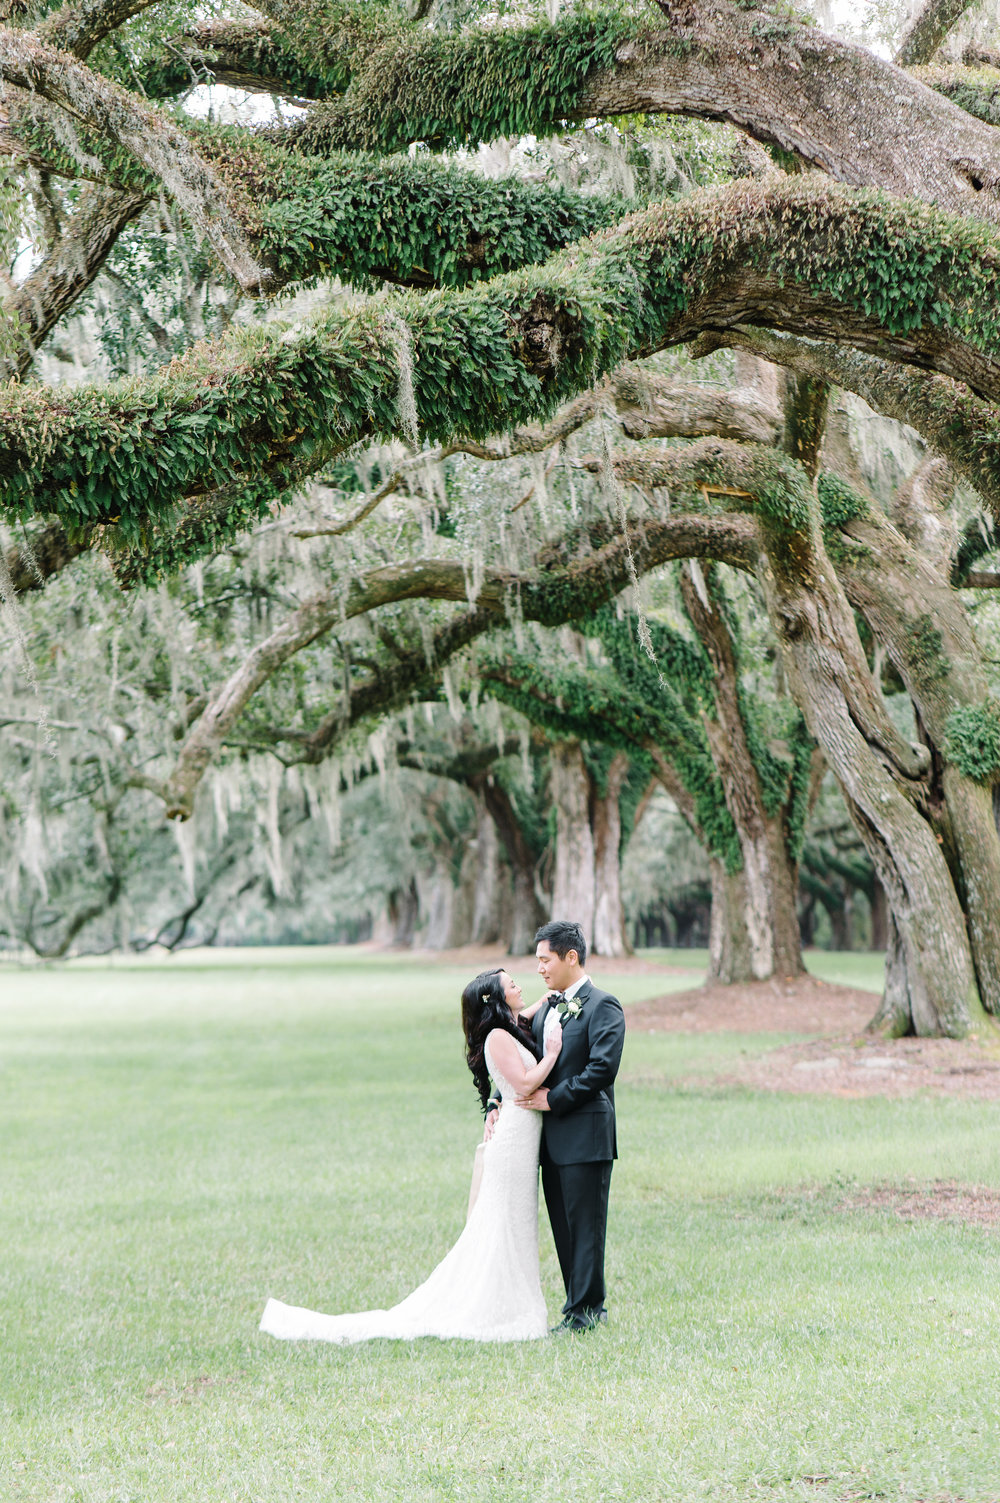 Calla+Thomas-BooneHallPlantationWeddingbyAaronandJillianPhotography-142.jpg